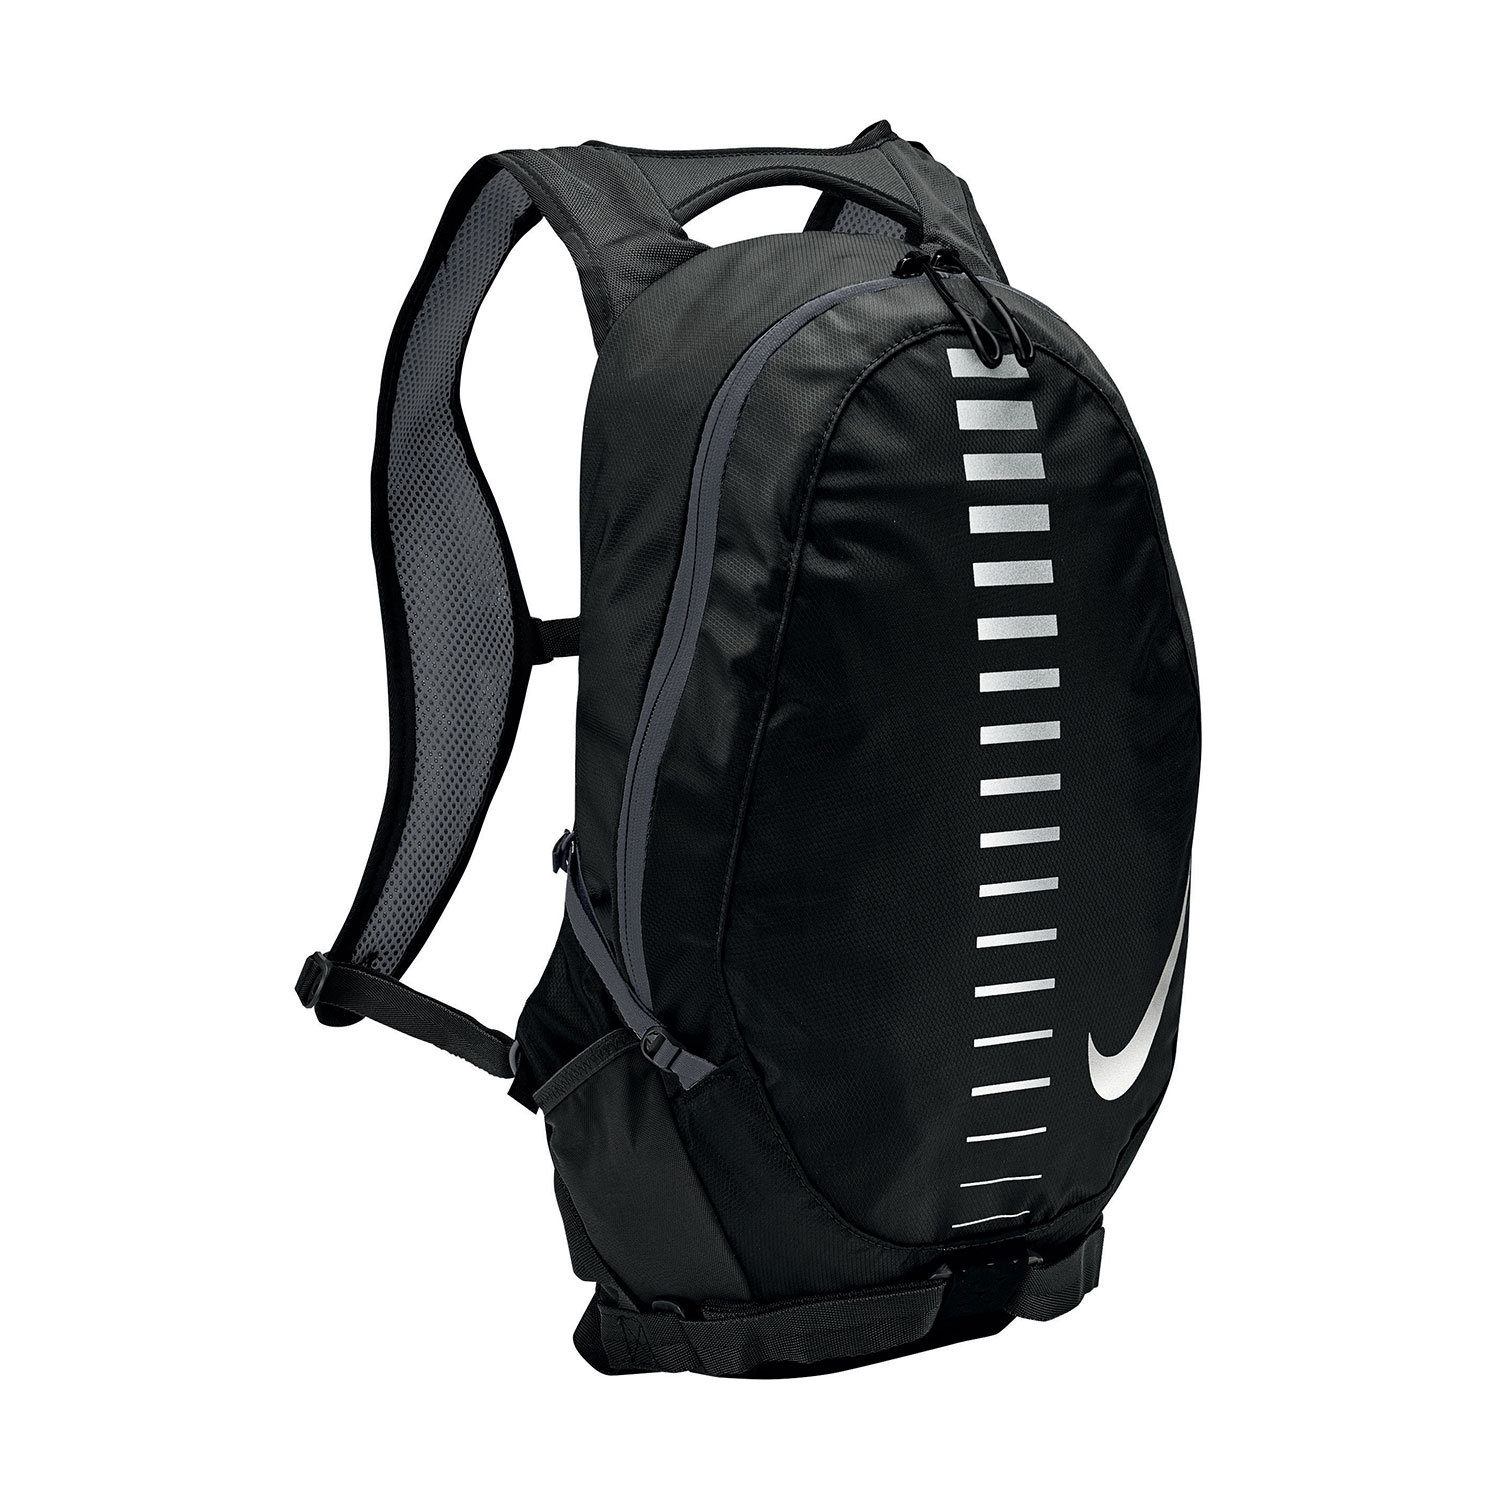 Nike Run Commuter Backpack - Black/Anthracite/Silver